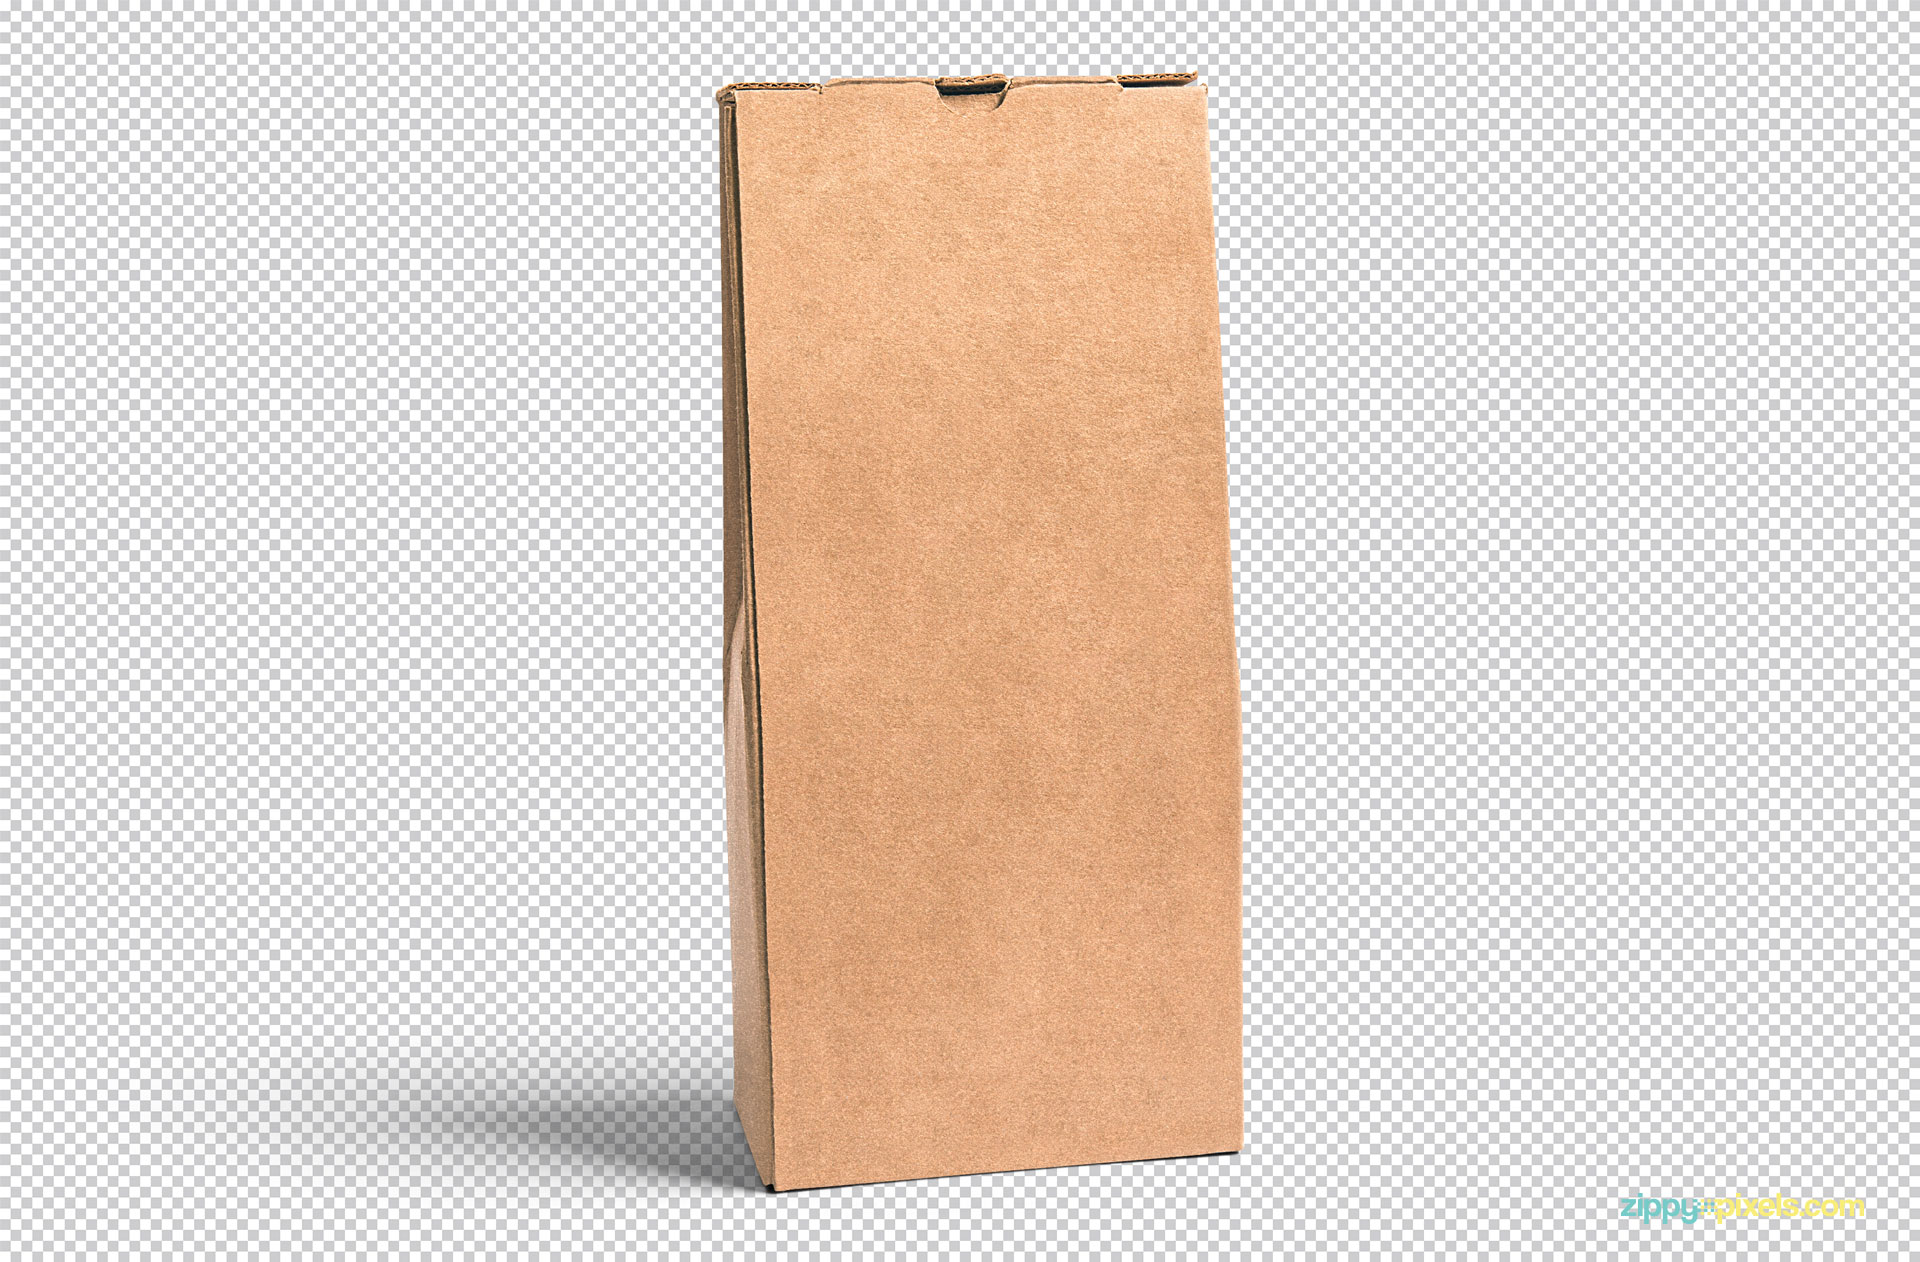 Plain cardboard pouch placed on a greyscale background.